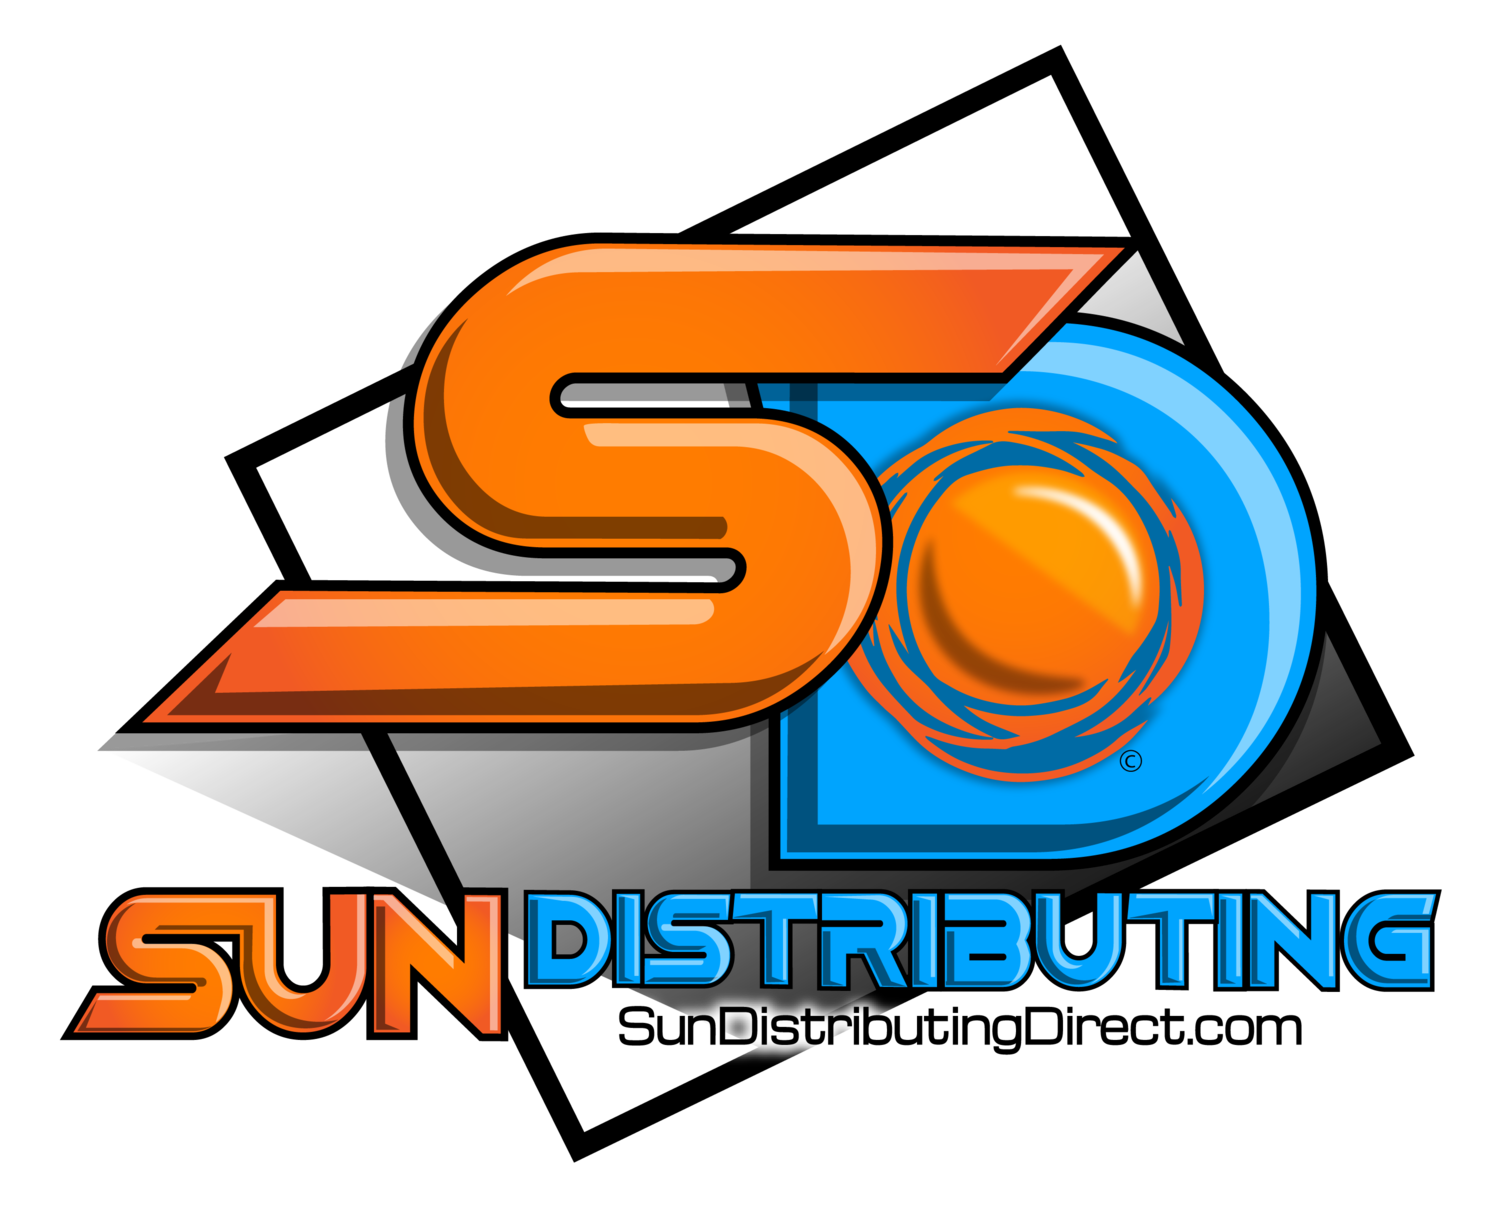 Sun Distributing